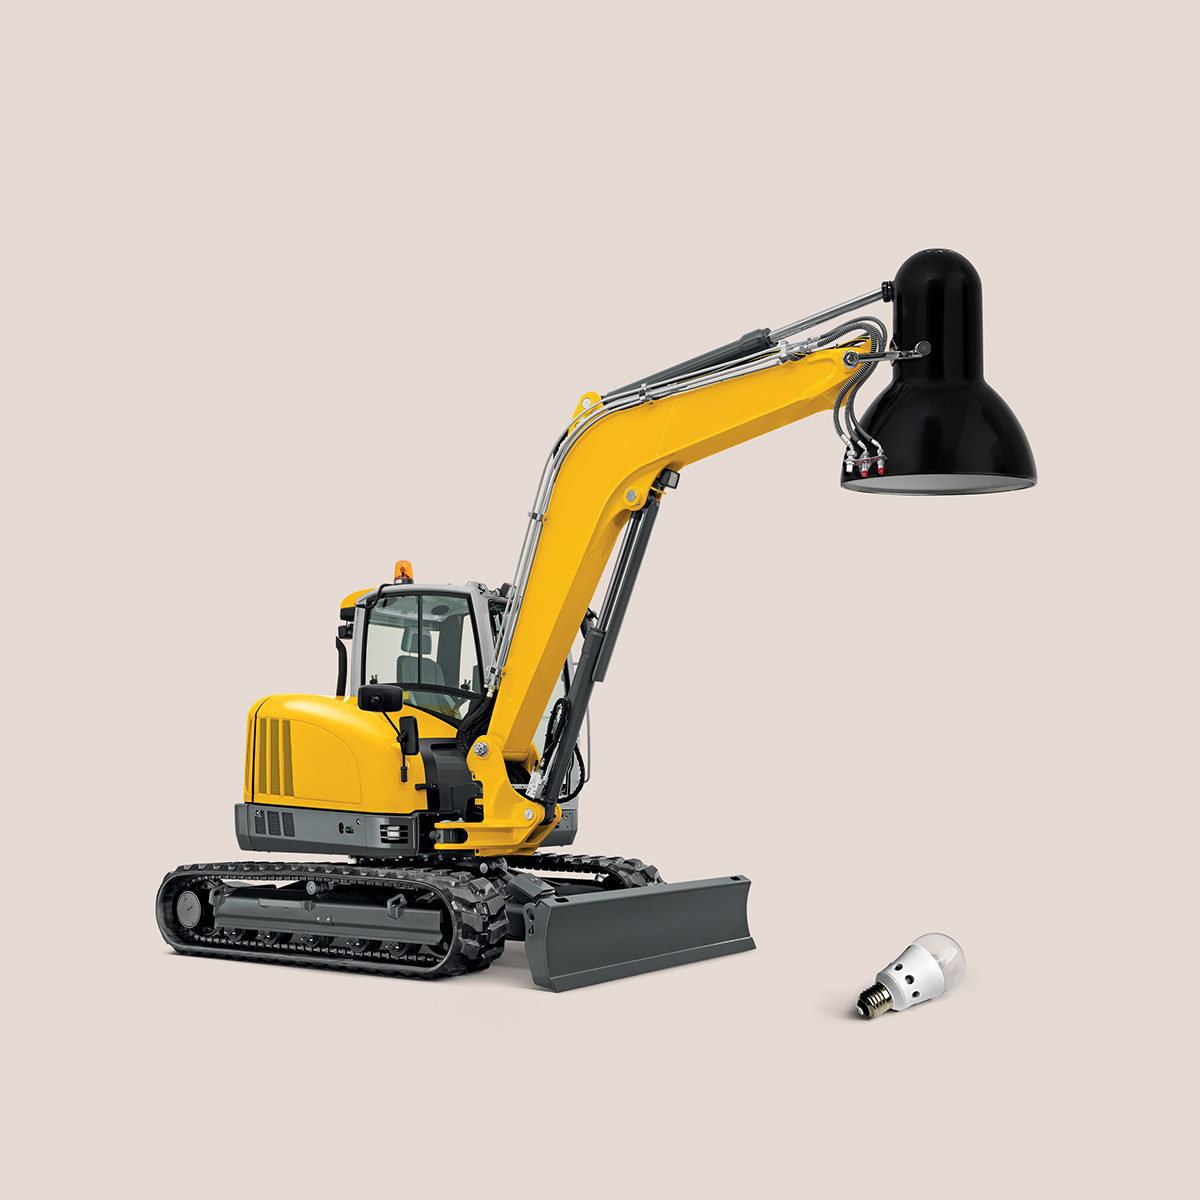 excavator lens photo montage photoshop by mohamed el nagdy